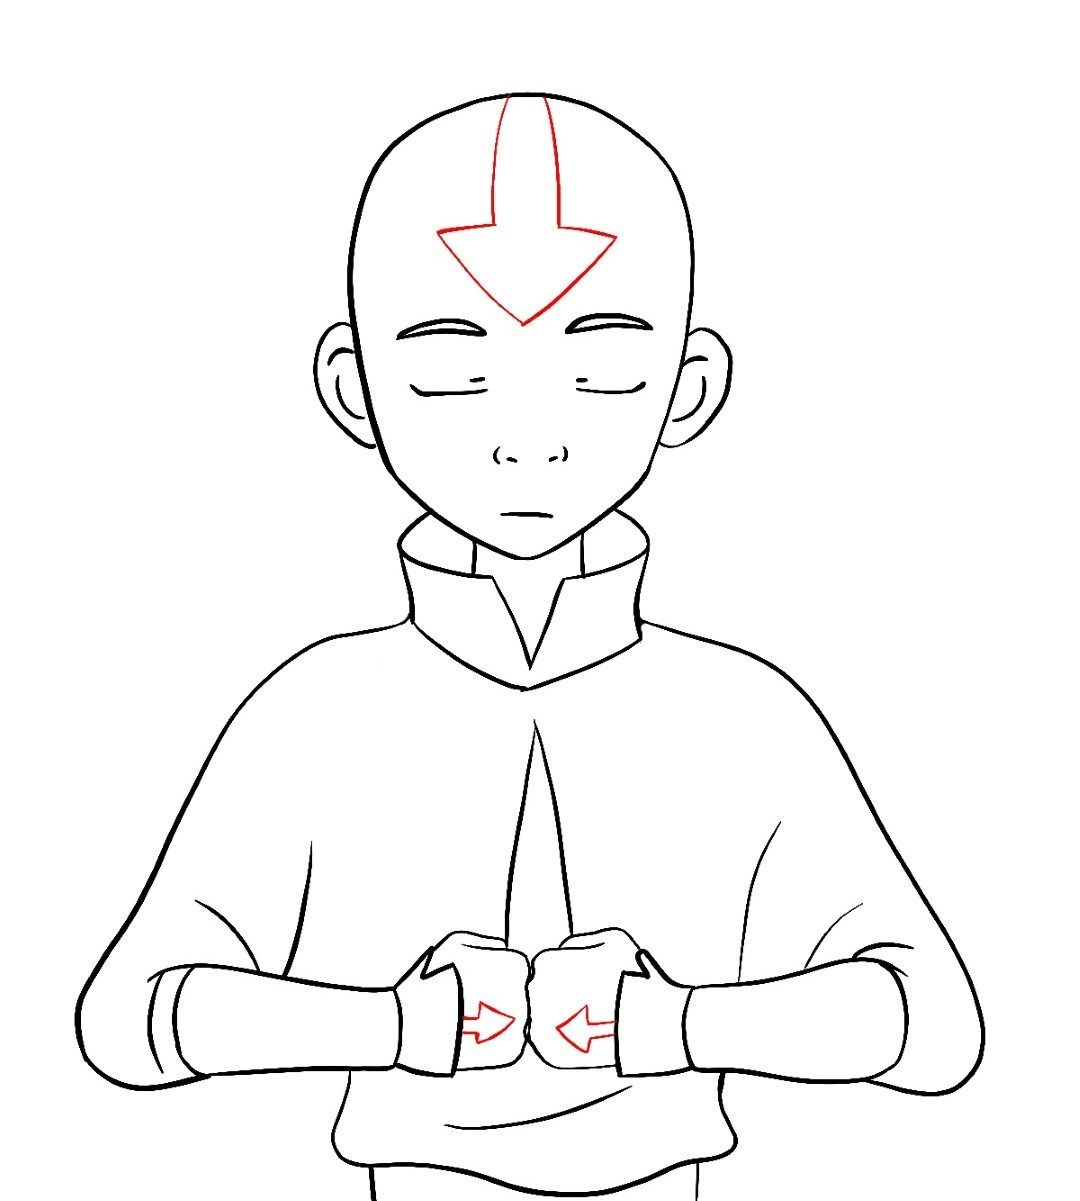 How To Draw Aang Avatar The Last Airbender Draw Central Avatar Cartoon Avatar The Last Airbender Art Avatar Tattoo